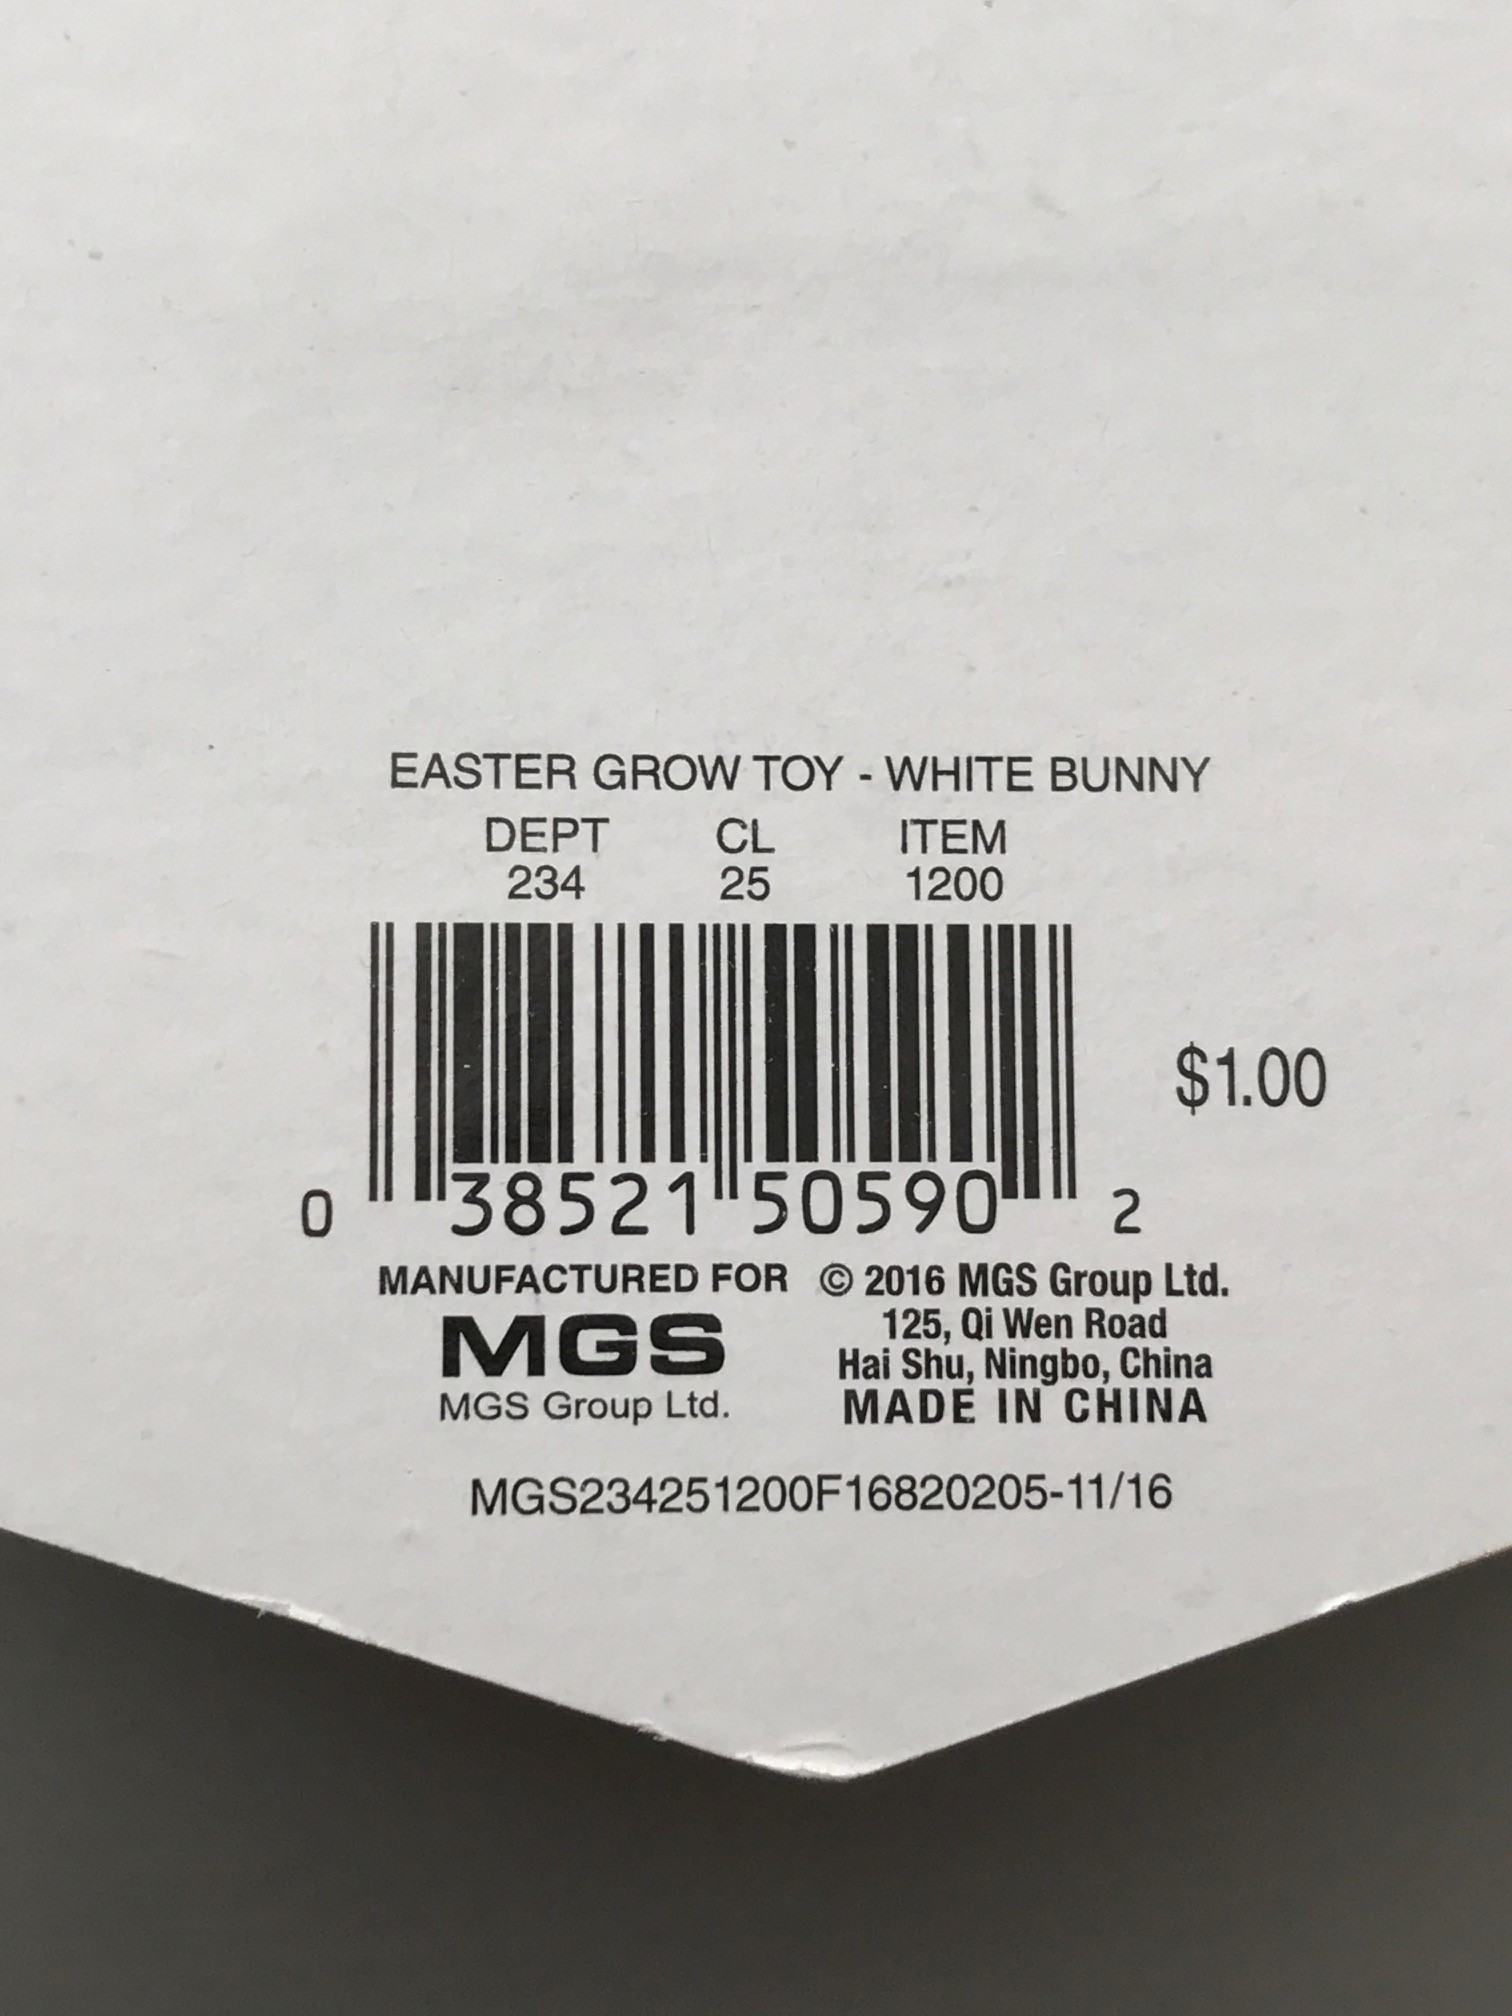 The model number of the Easter  Grow Toy is located on the back